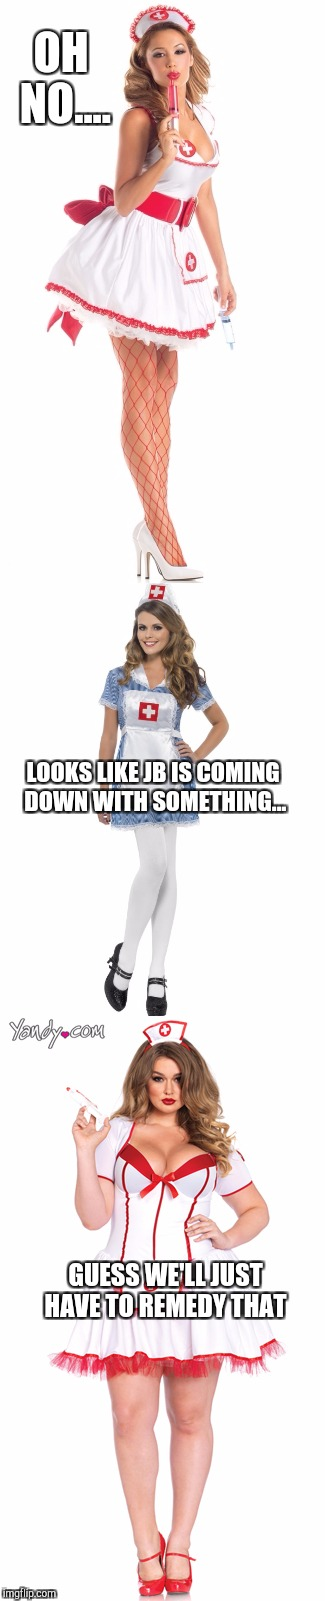 OH NO.... LOOKS LIKE JB IS COMING DOWN WITH SOMETHING... GUESS WE'LL JUST HAVE TO REMEDY THAT | made w/ Imgflip meme maker